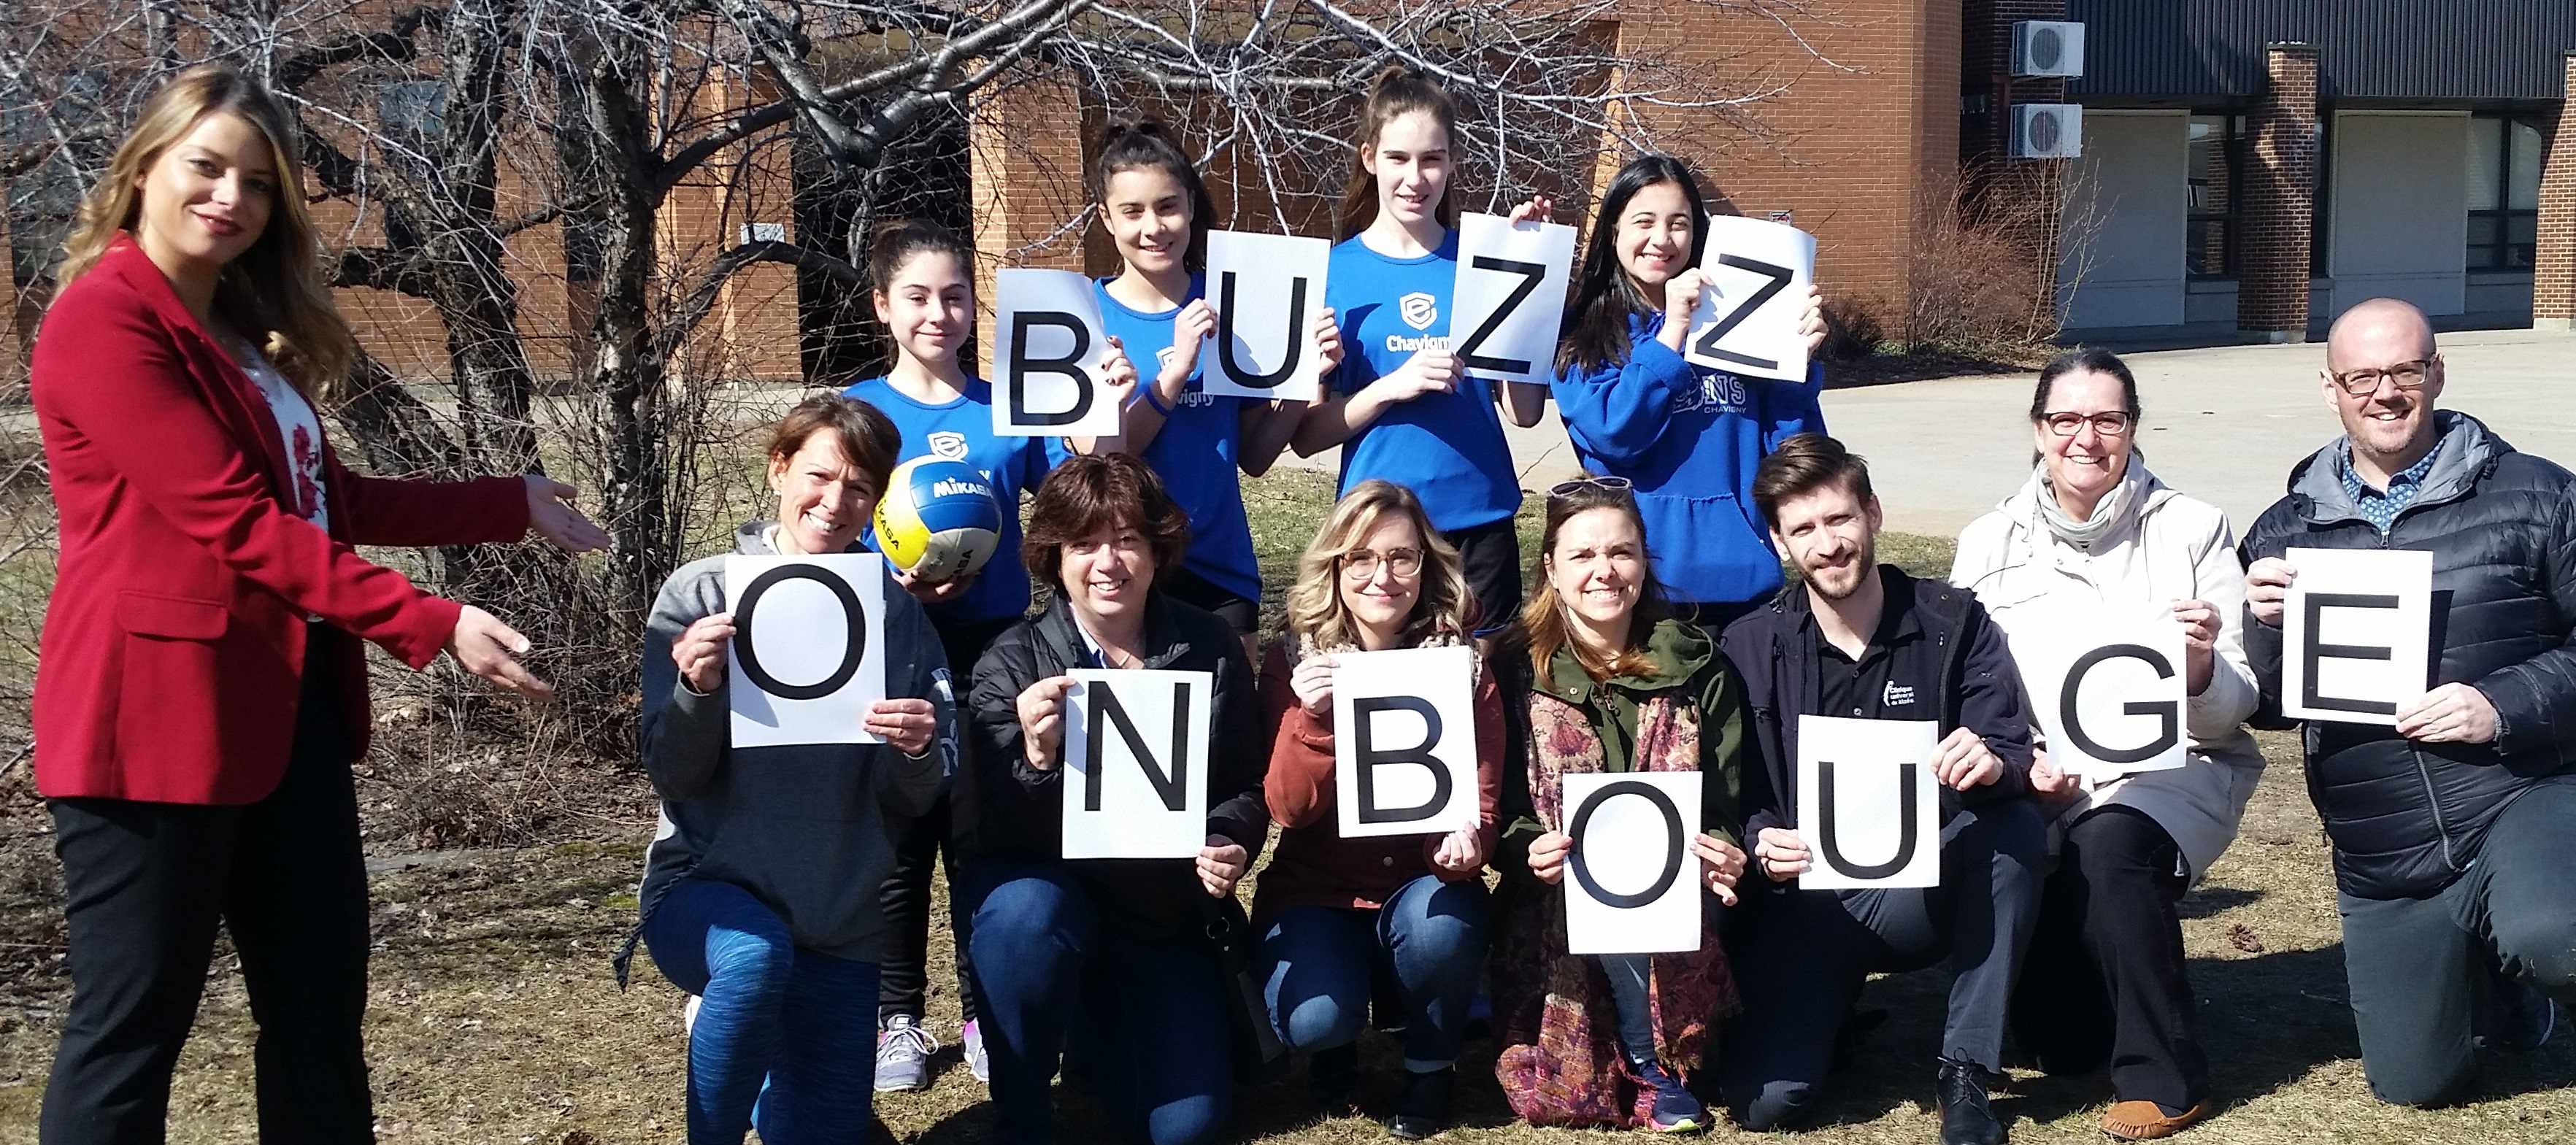 BUZZ on bouge: 15 minutes pour bouger dehors